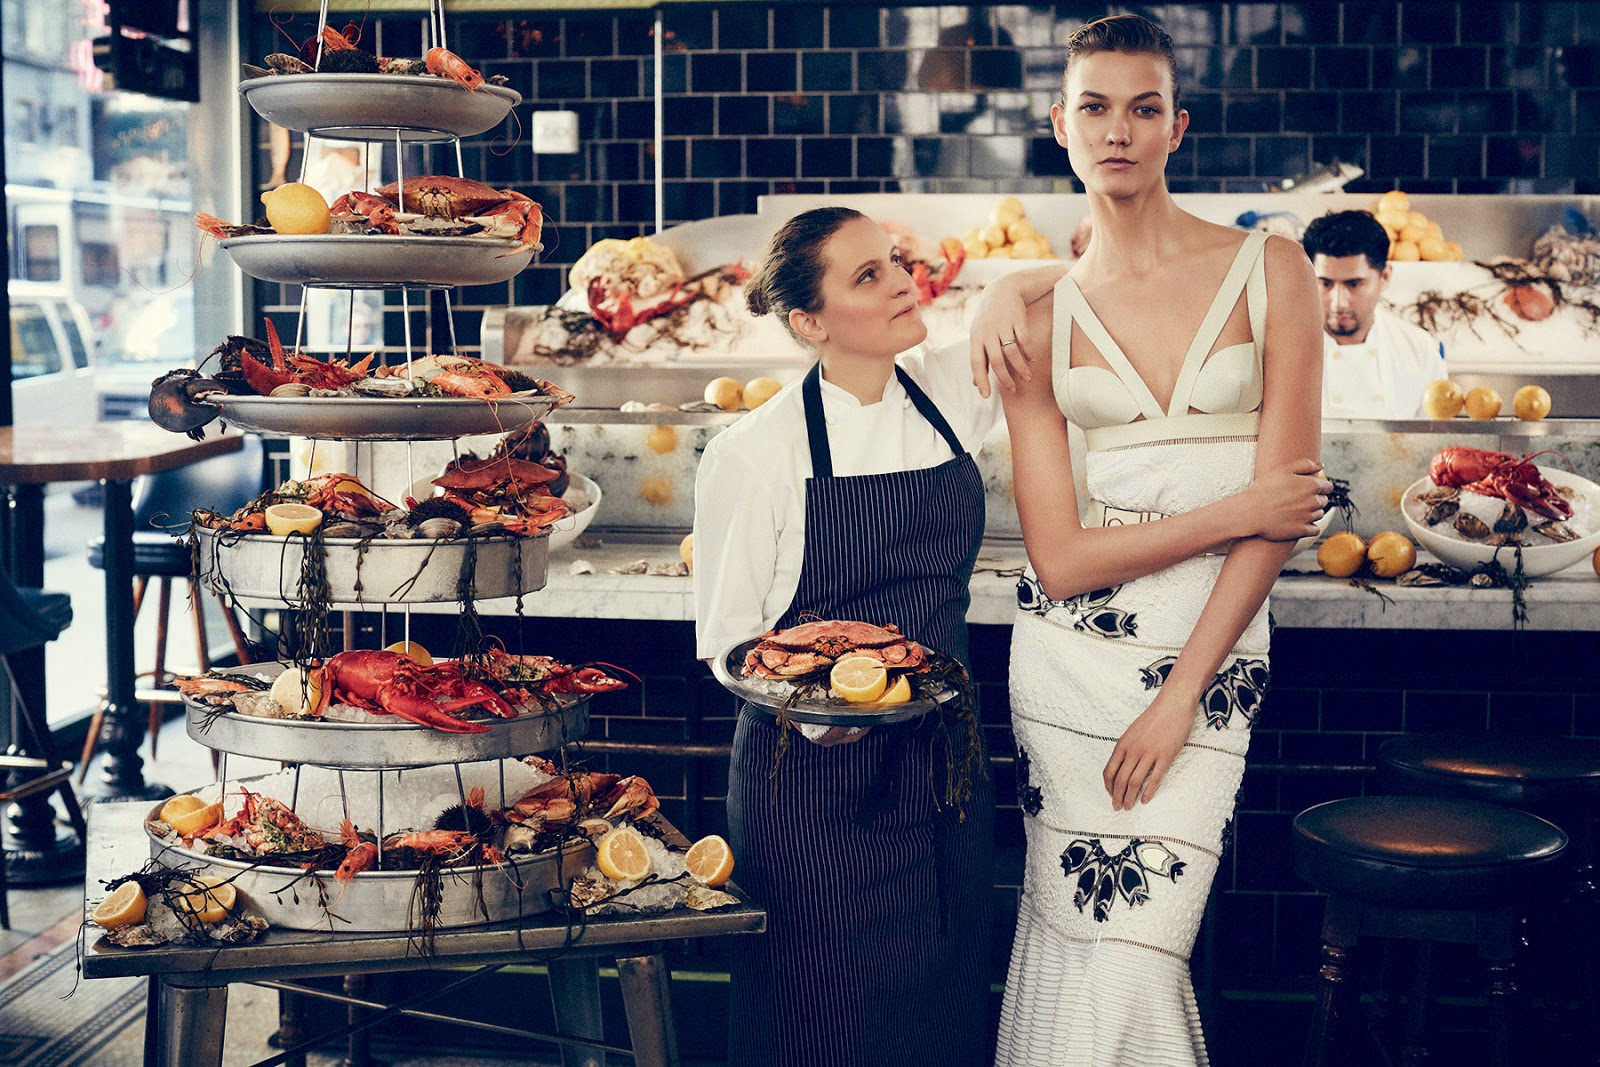 Food, Fashion Model: Karlie Kloss - Vogue US March 2015